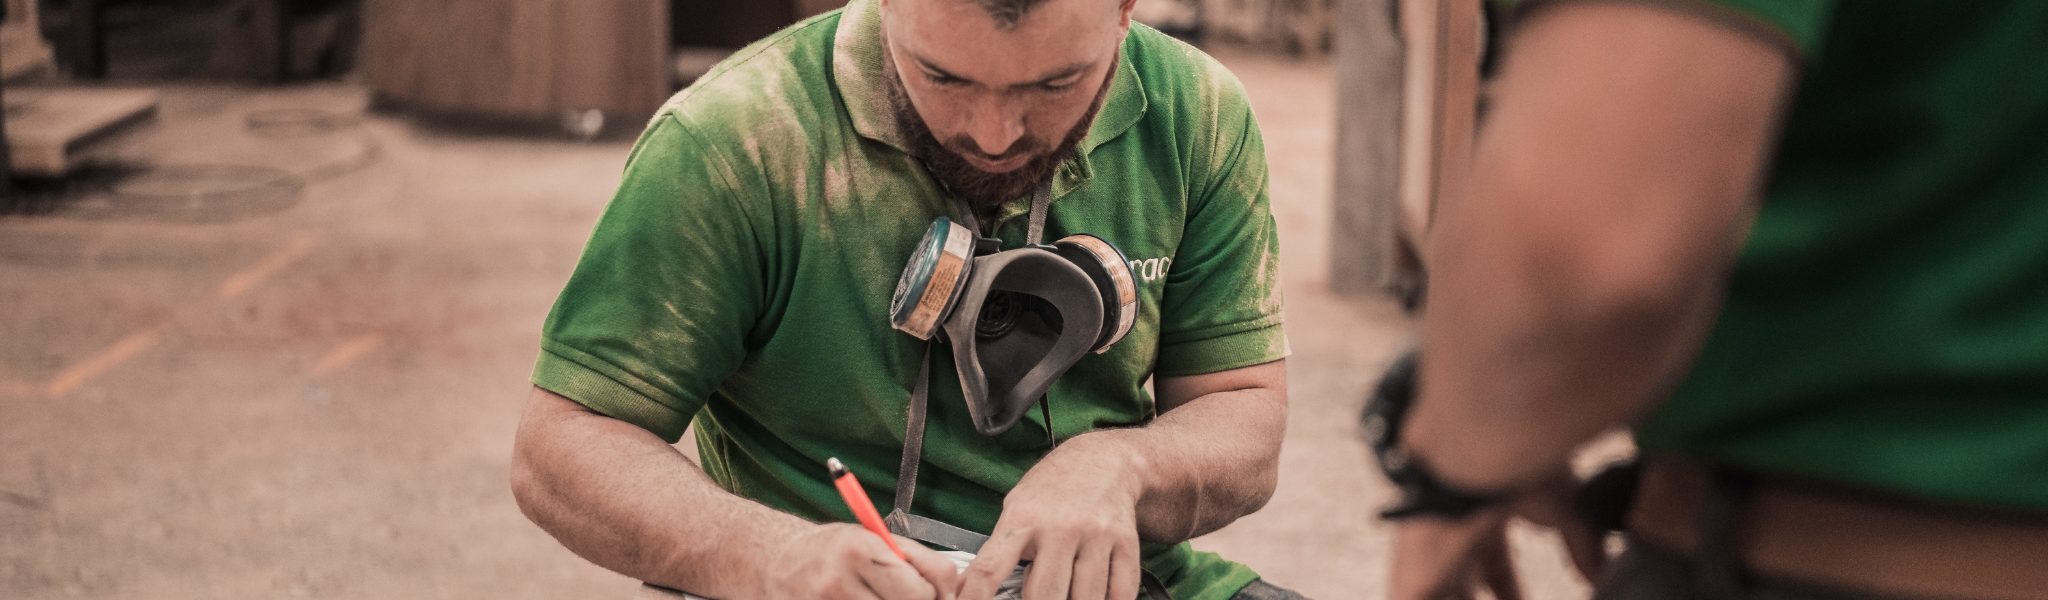 Man writing notes - manufacturing trends